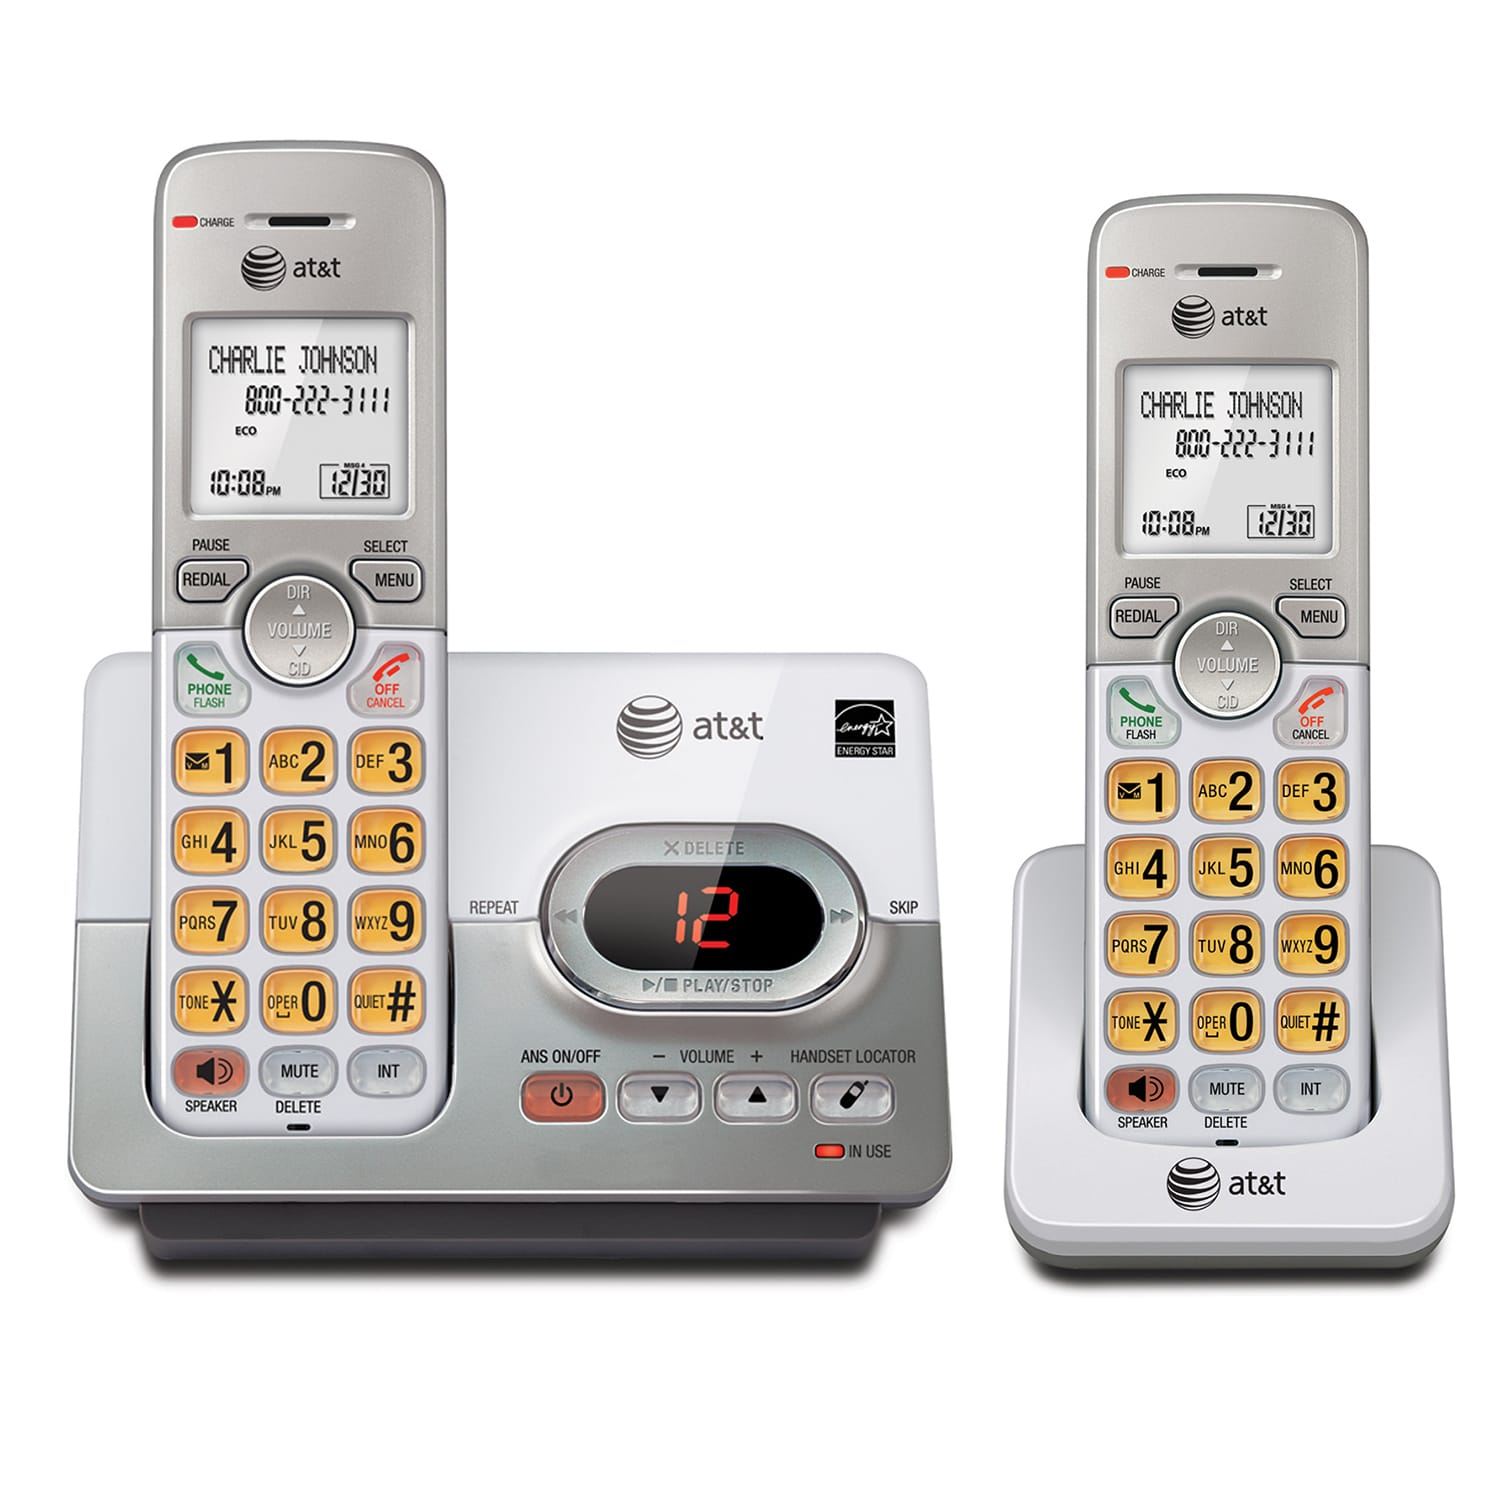 2 handset cordless answering system with caller ID/call waiting